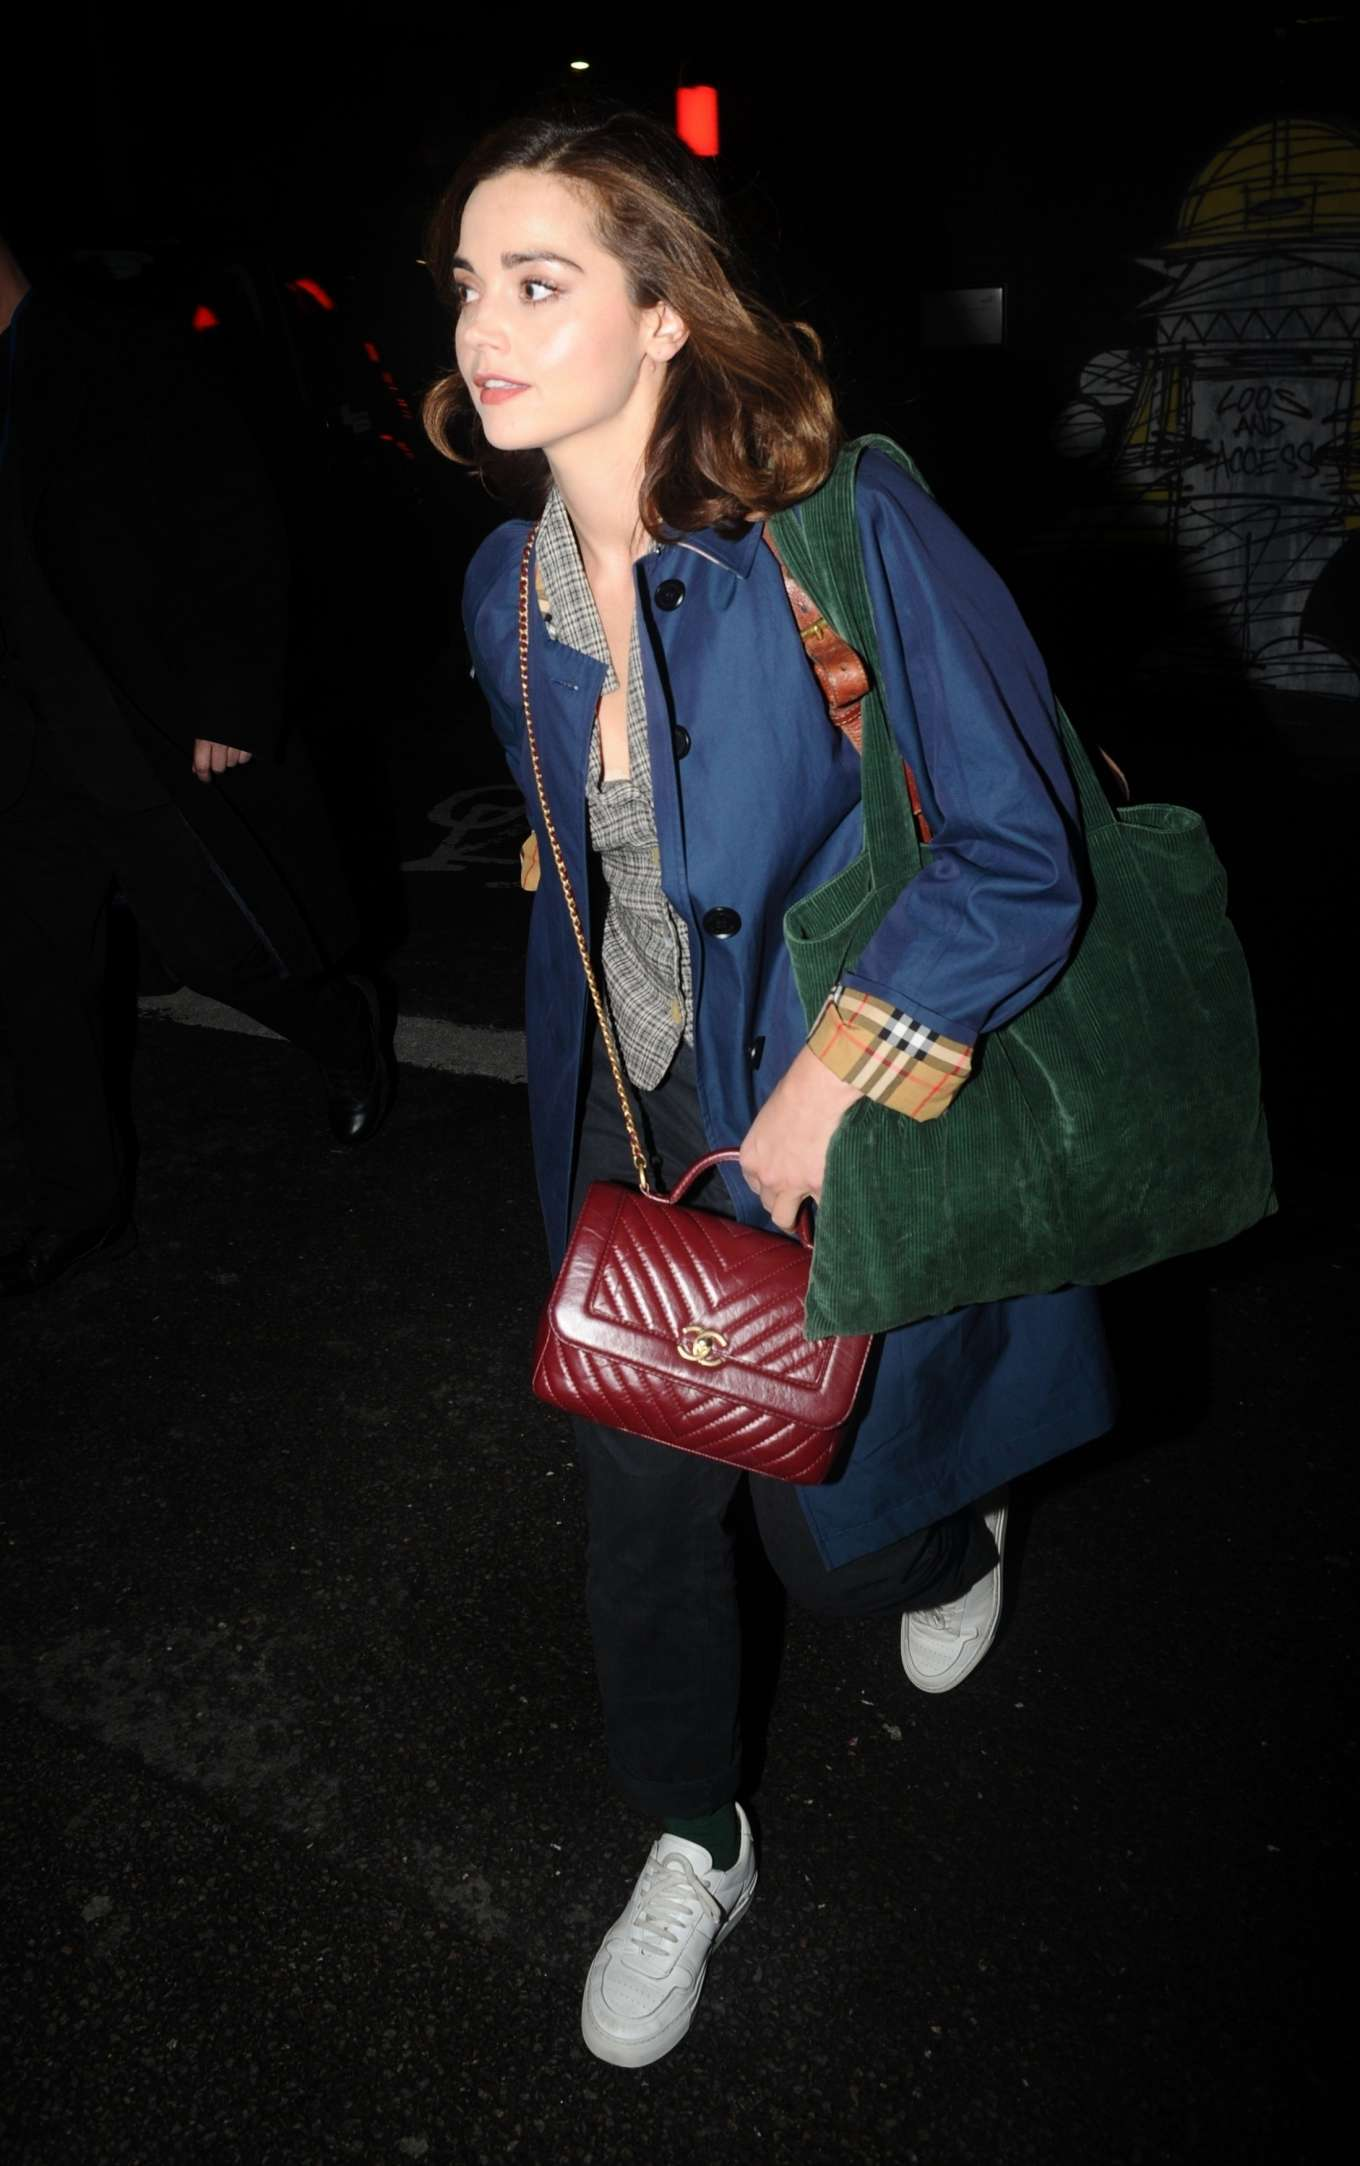 Jenna Coleman - Seen outside The Old Vic in London